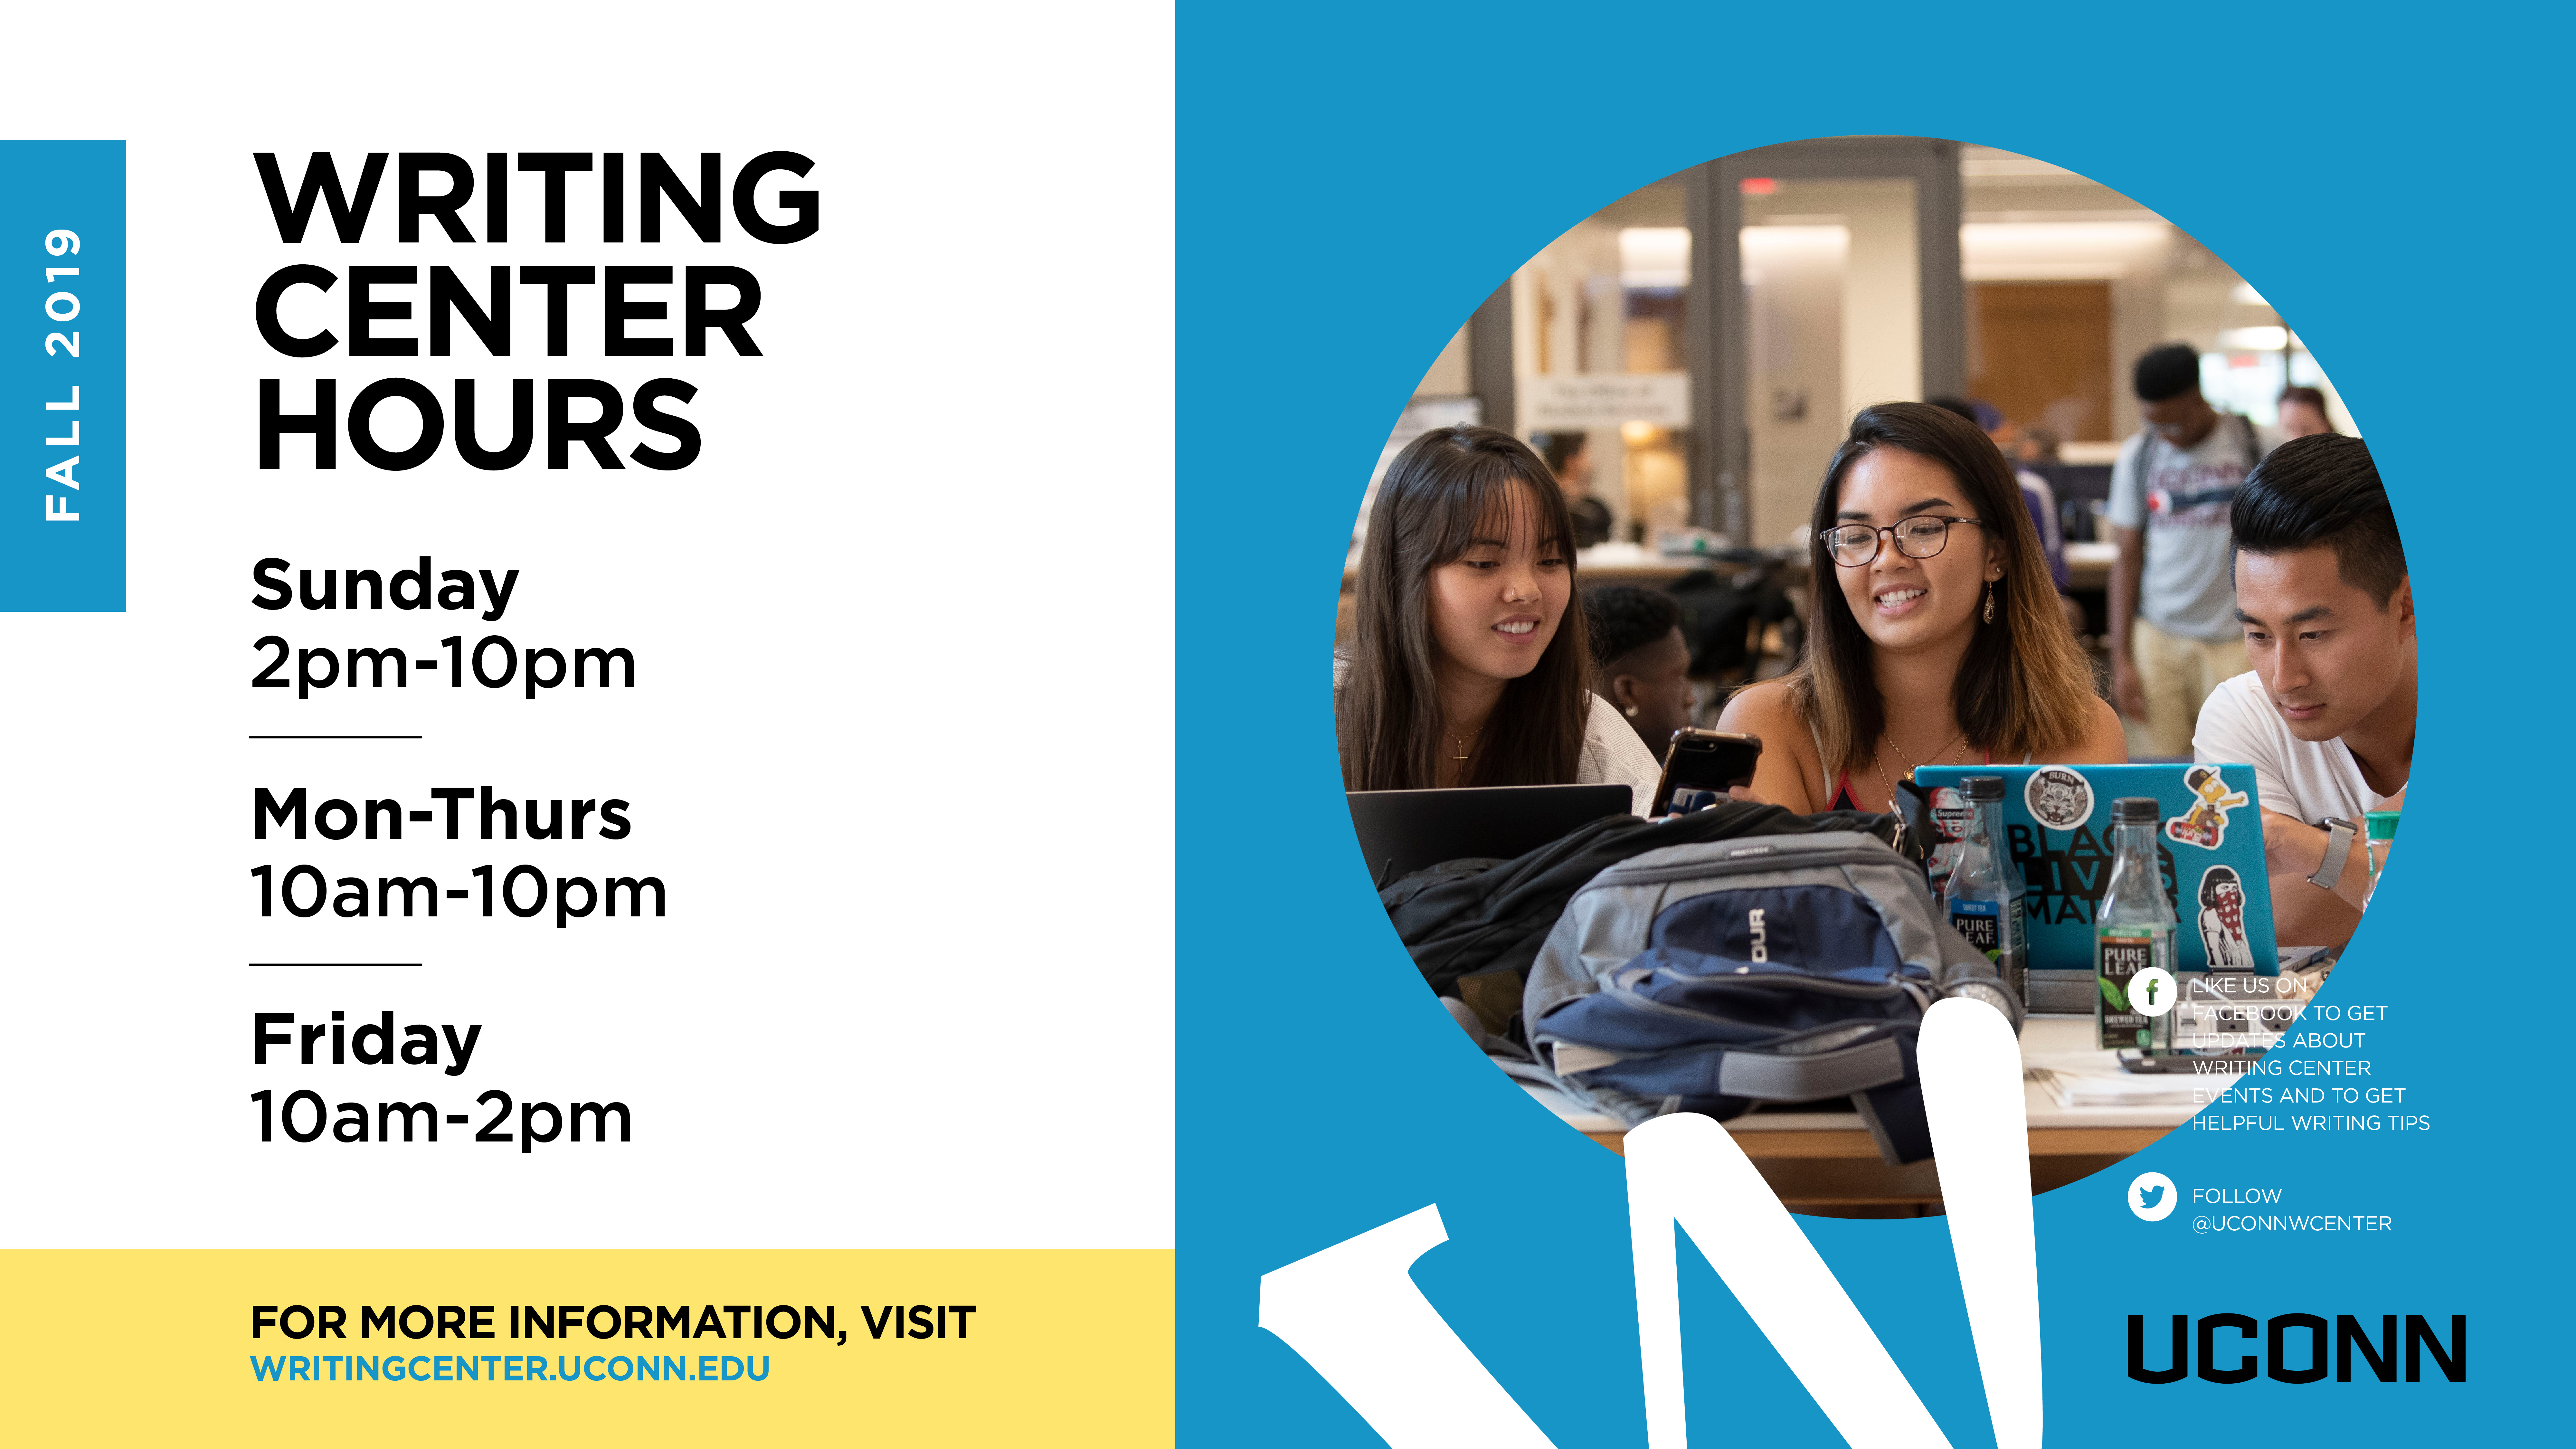 Fall 2019 Writing Center Hours. Sunday 2pm-10pm. Mon-Thurs 10am-10pm. Friday 10am-2pm. For more information visit writingcenter.uconn.edu